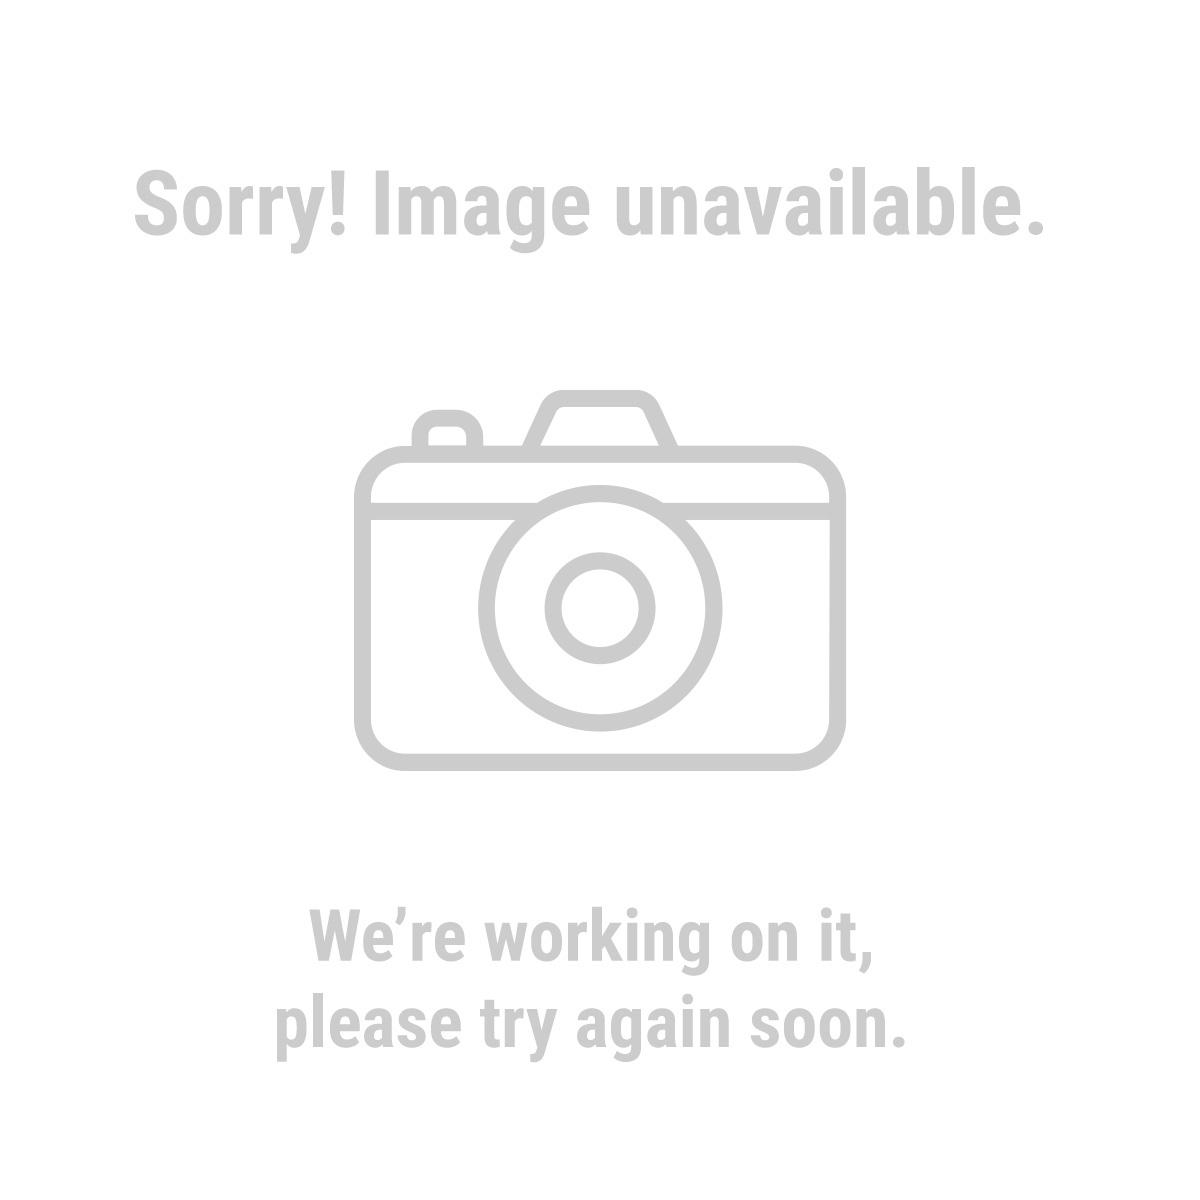 90311 Pack of 6 Coarse Grade Aluminum Oxide Sanding Sponges with Beveled Edge